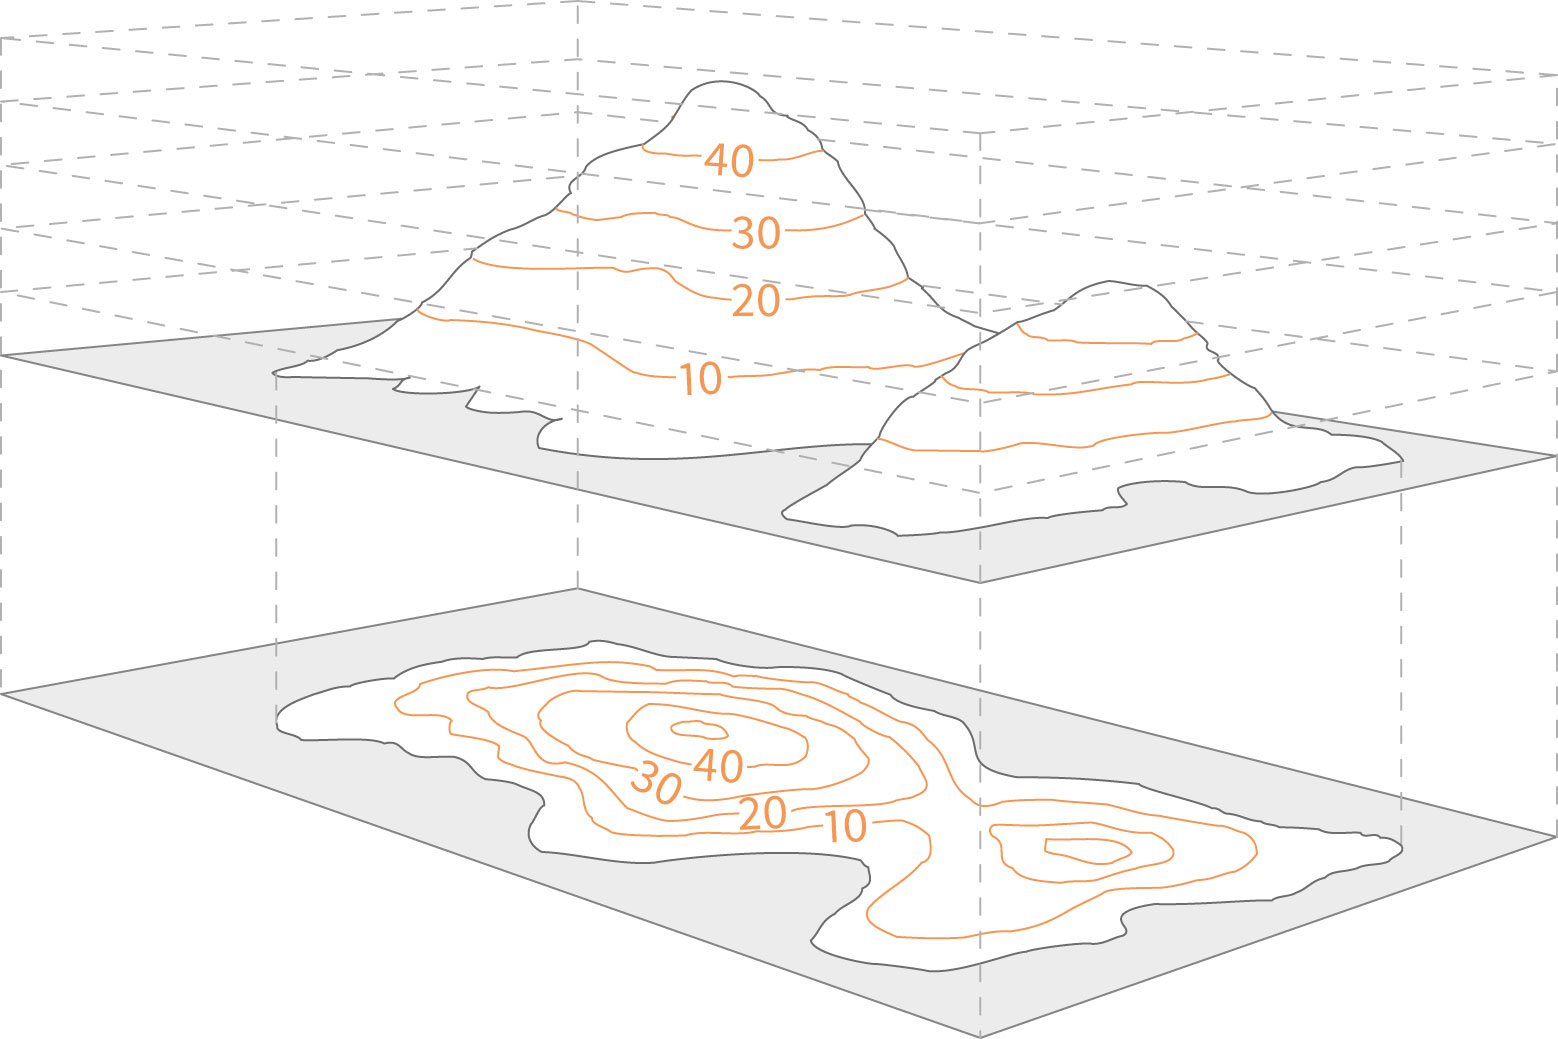 hight resolution of A beginners guide to understanding map contour lines   OS GetOutside